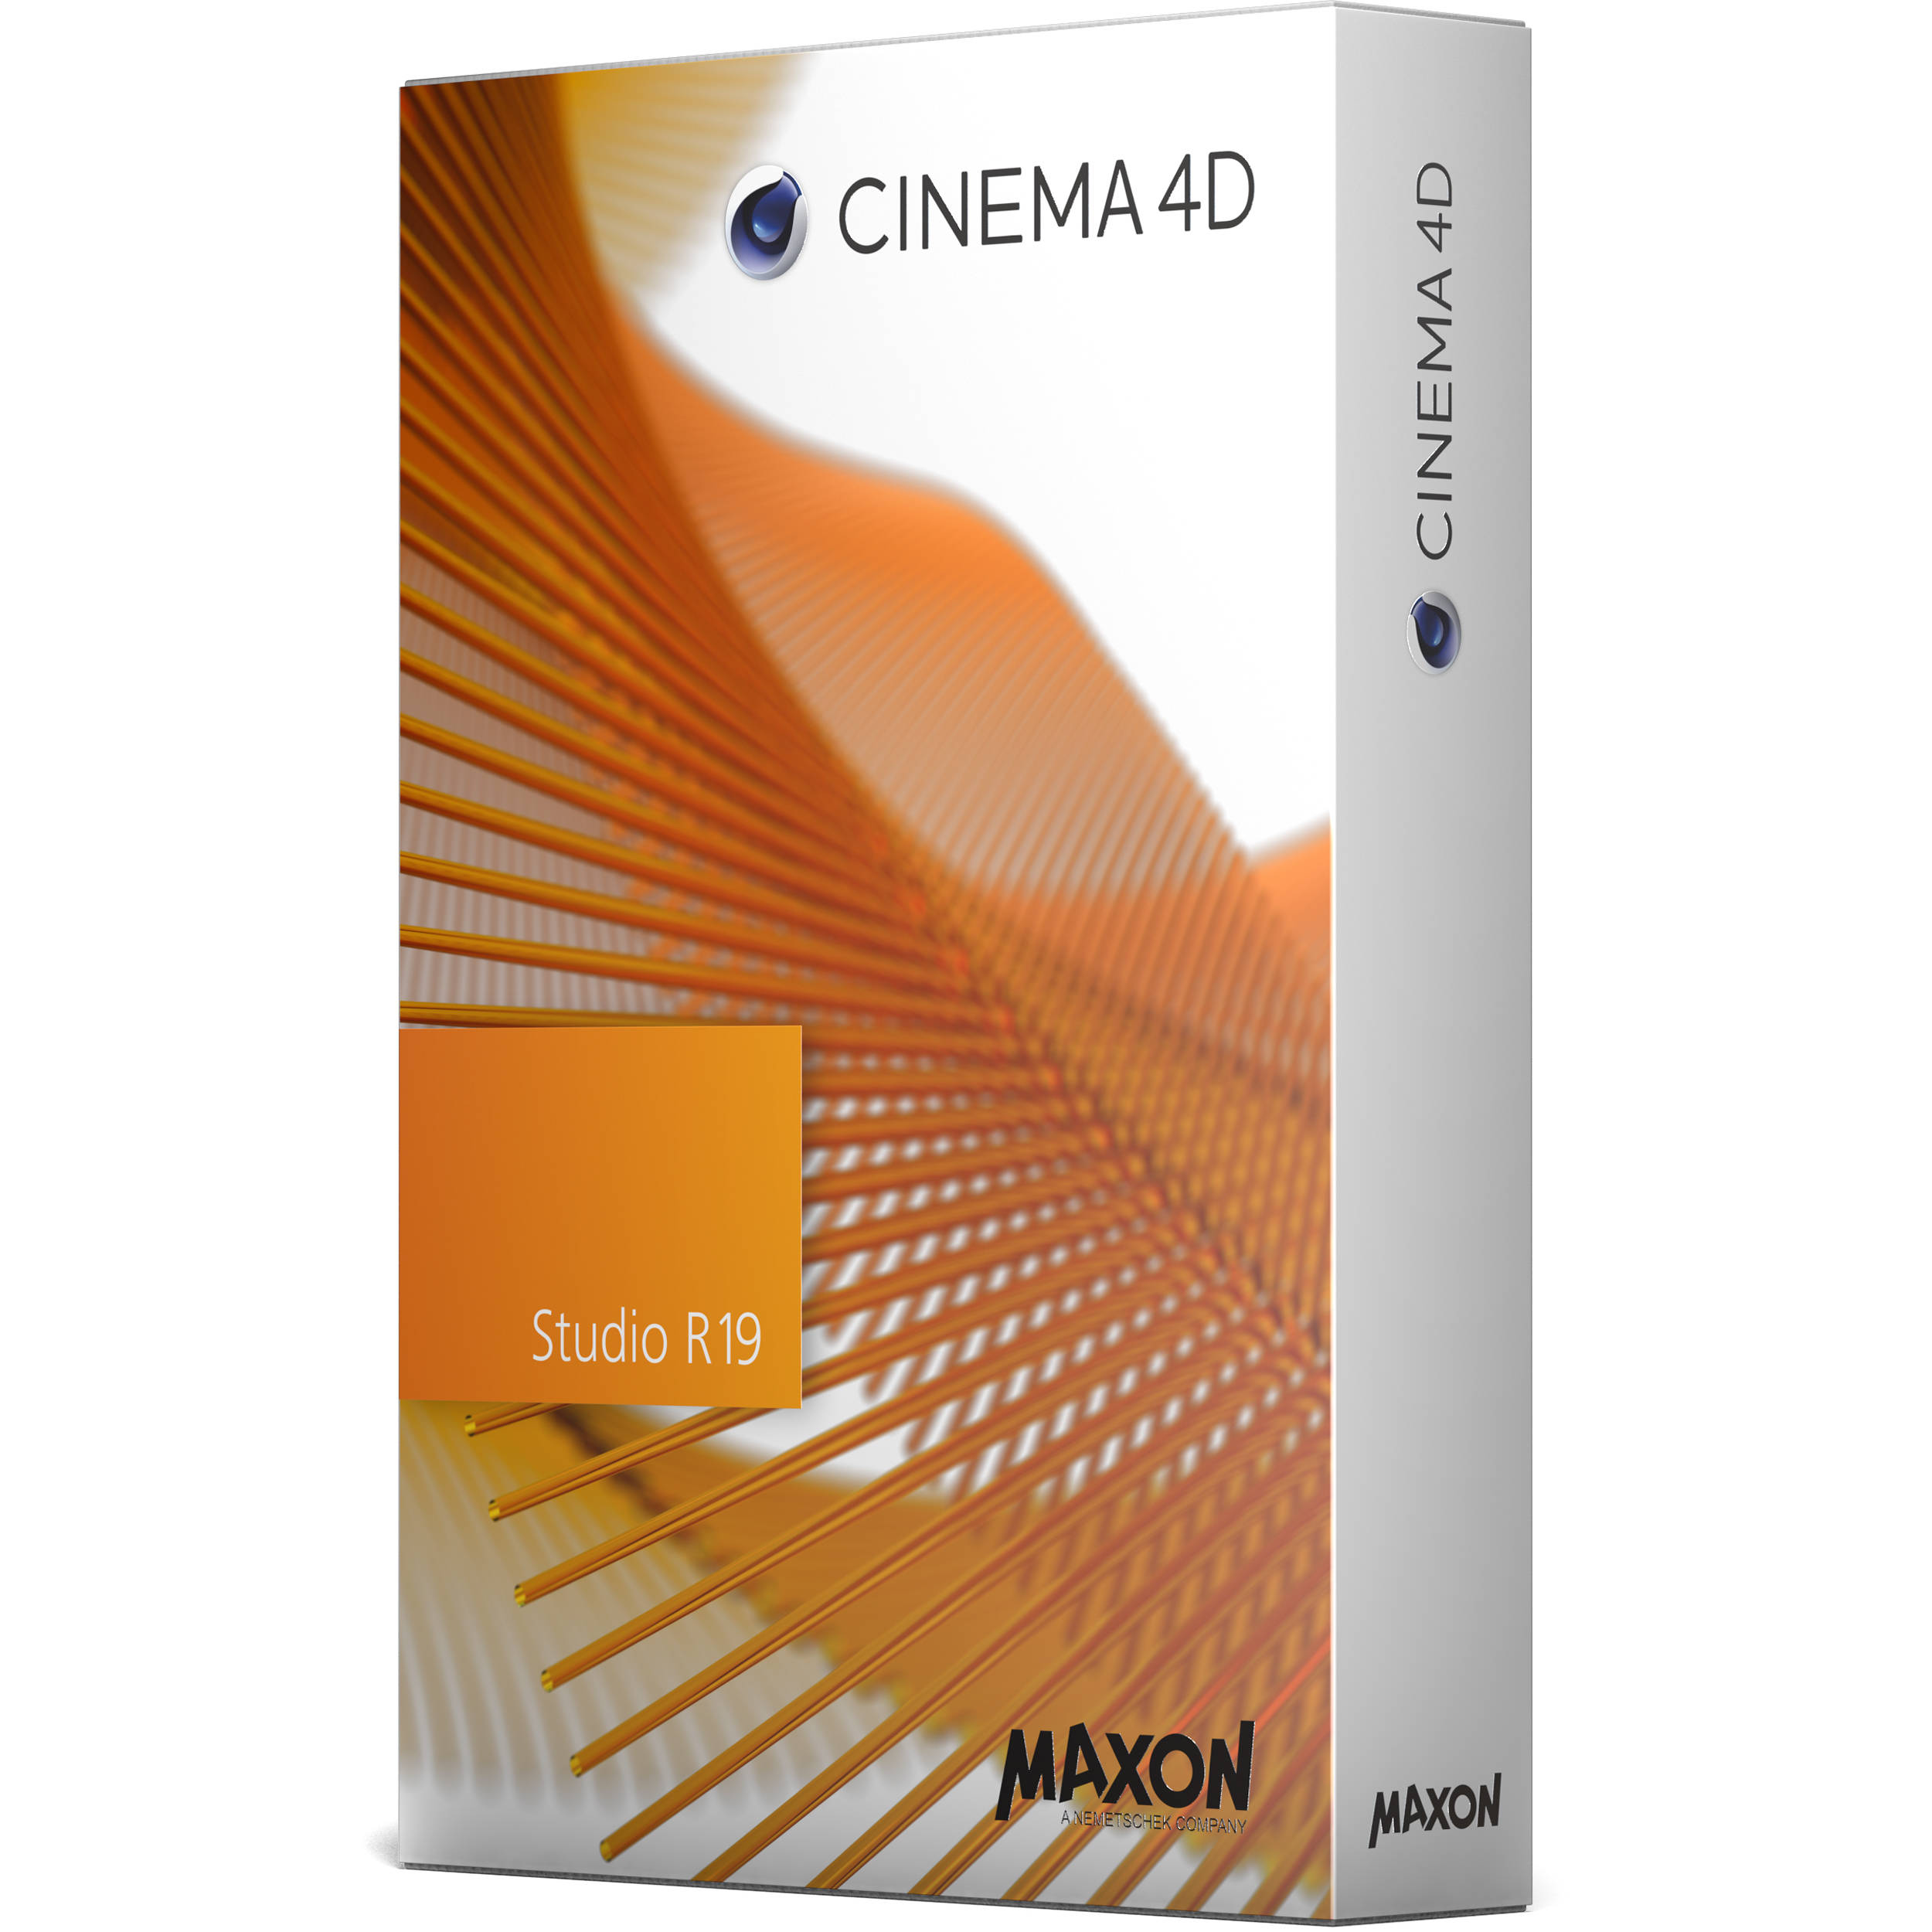 Maxon Cinema 4D Studio R19 (Upgrade from Prime R17, Download)